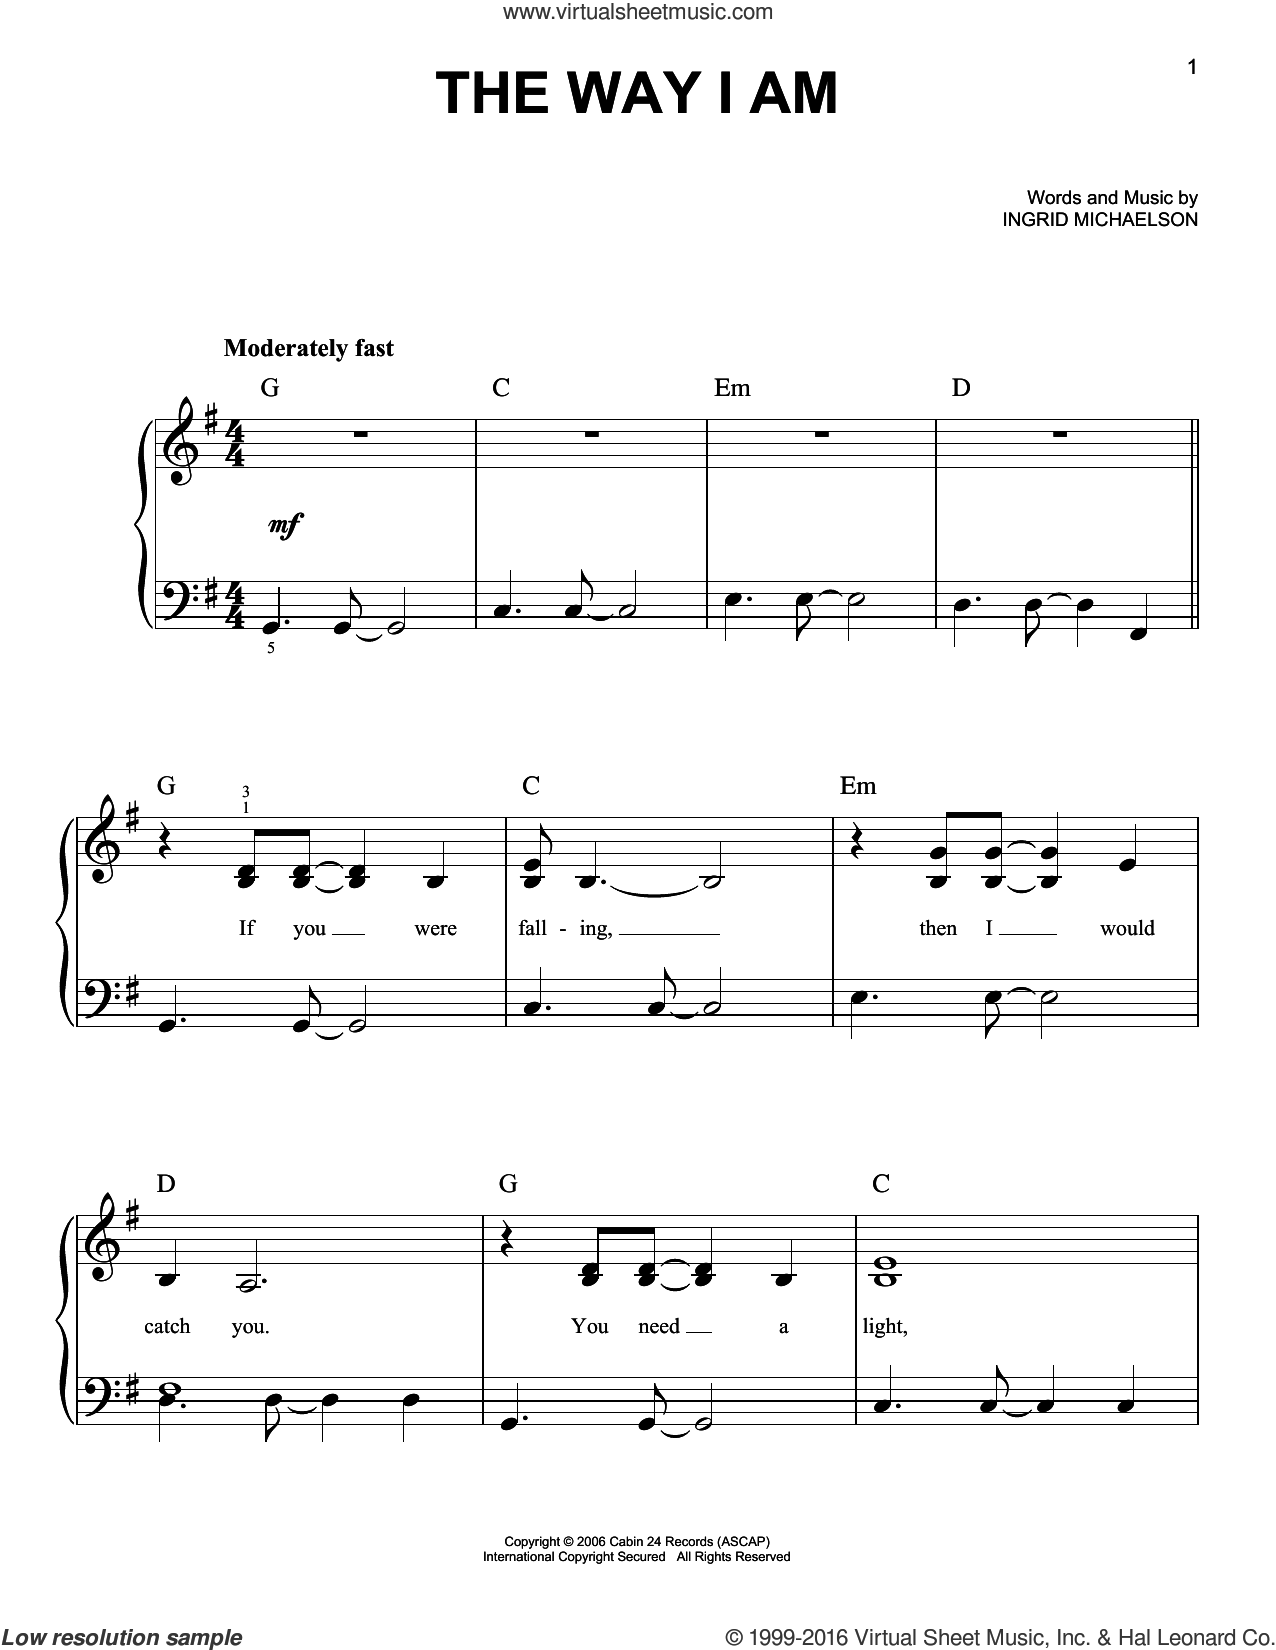 The Way I Am sheet music for piano solo by Ingrid Michaelson, wedding score, easy skill level